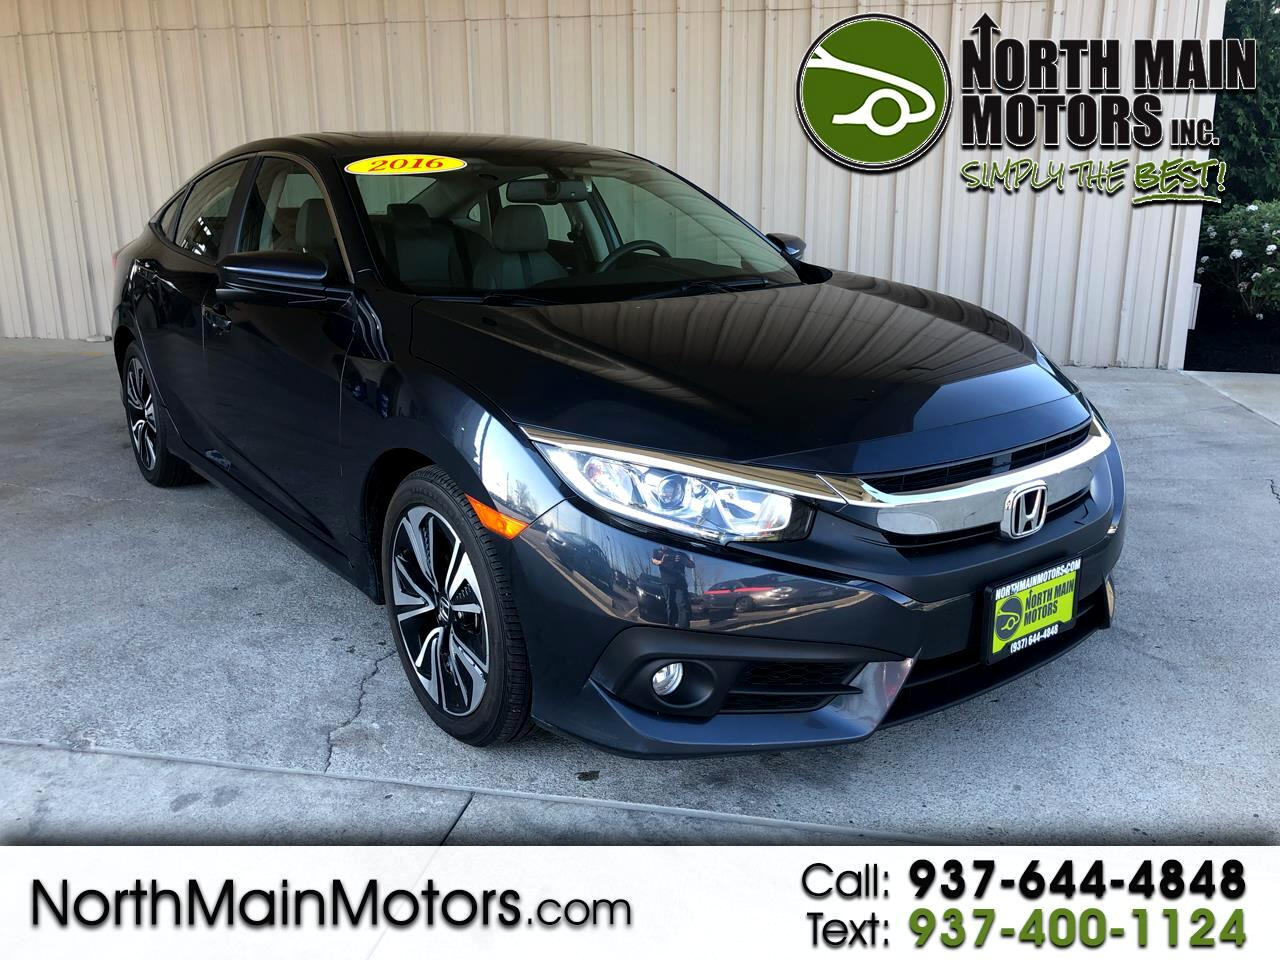 Honda Civic Sedan 4dr CVT EX-L 2016